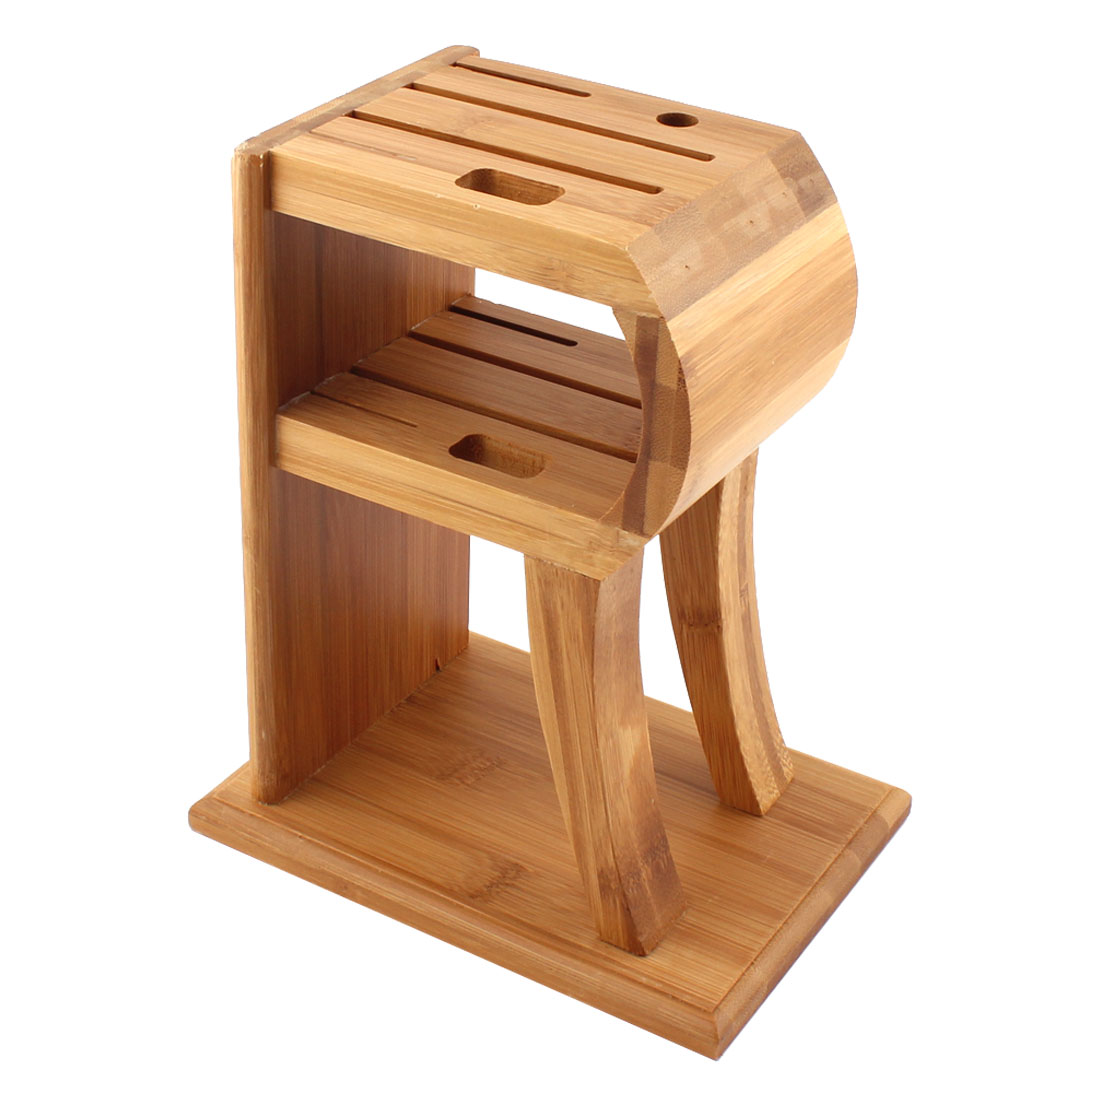 Household Kitchen Bamboo Handcrafted 5 Slots Cutlery Cutter Holder Storage Box